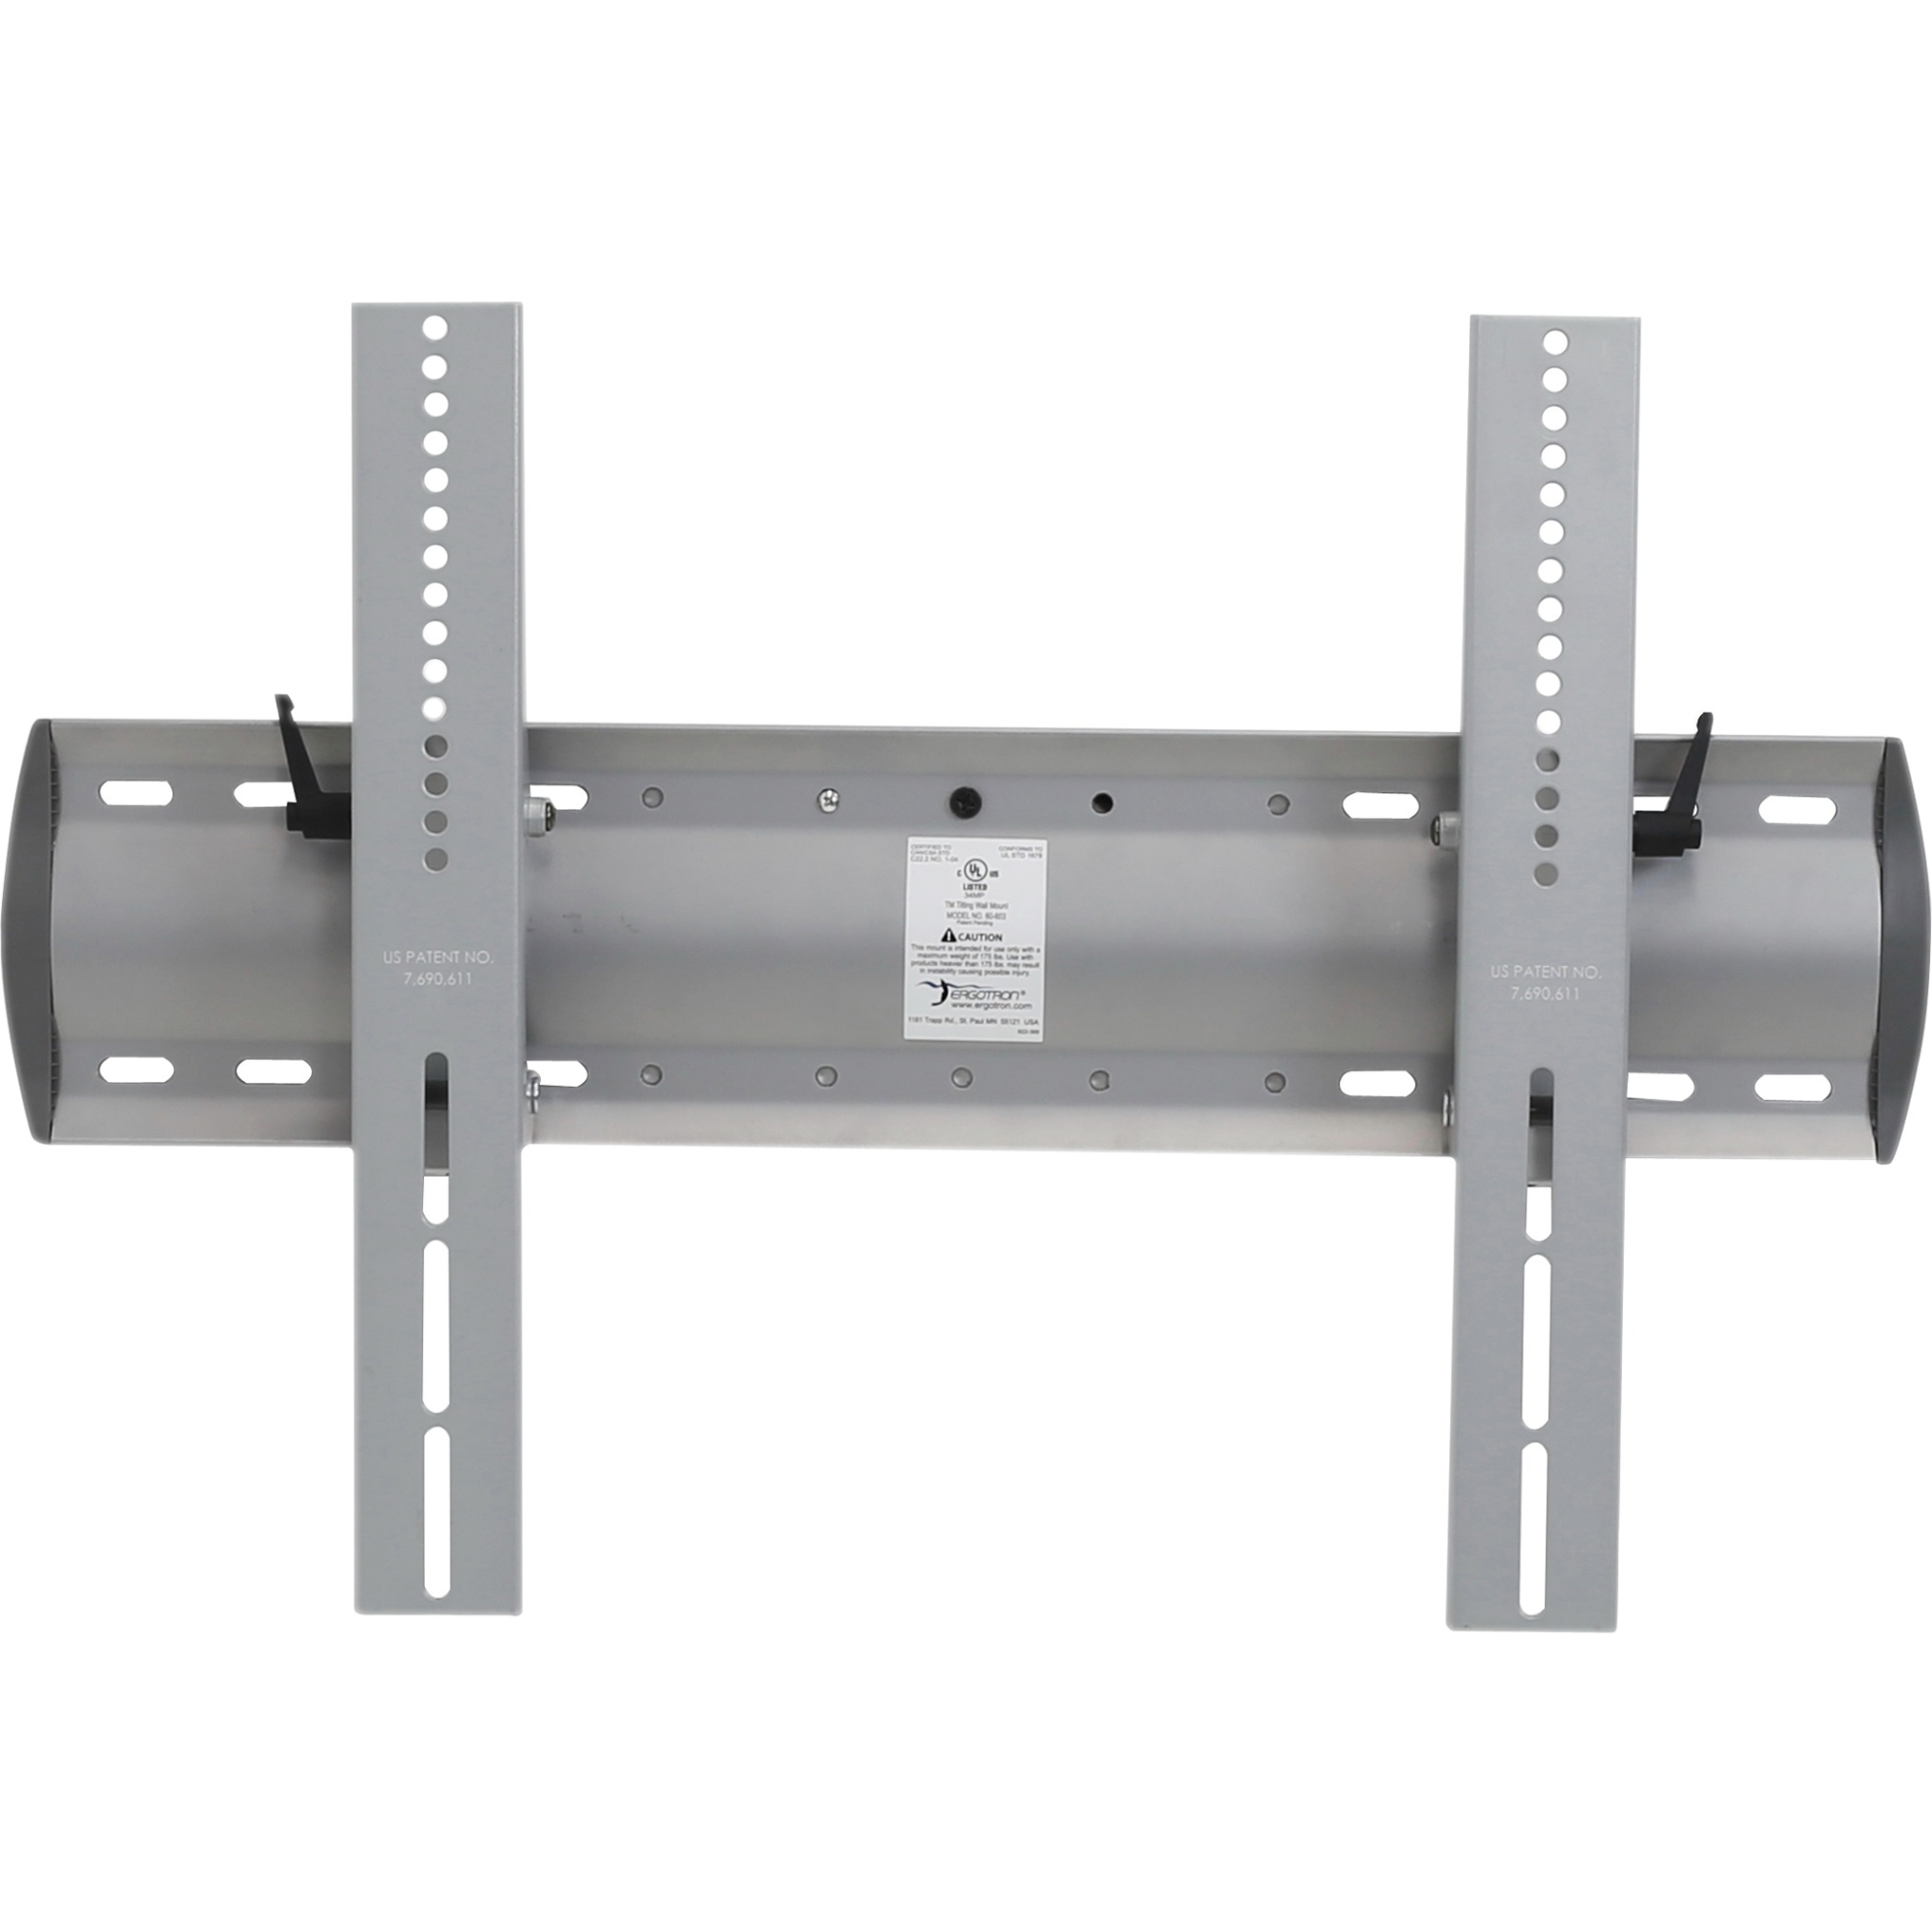 """Ergotron Wall Mount for Flat Panel Display - 32"""" Screen Support - (Refurbished)"""